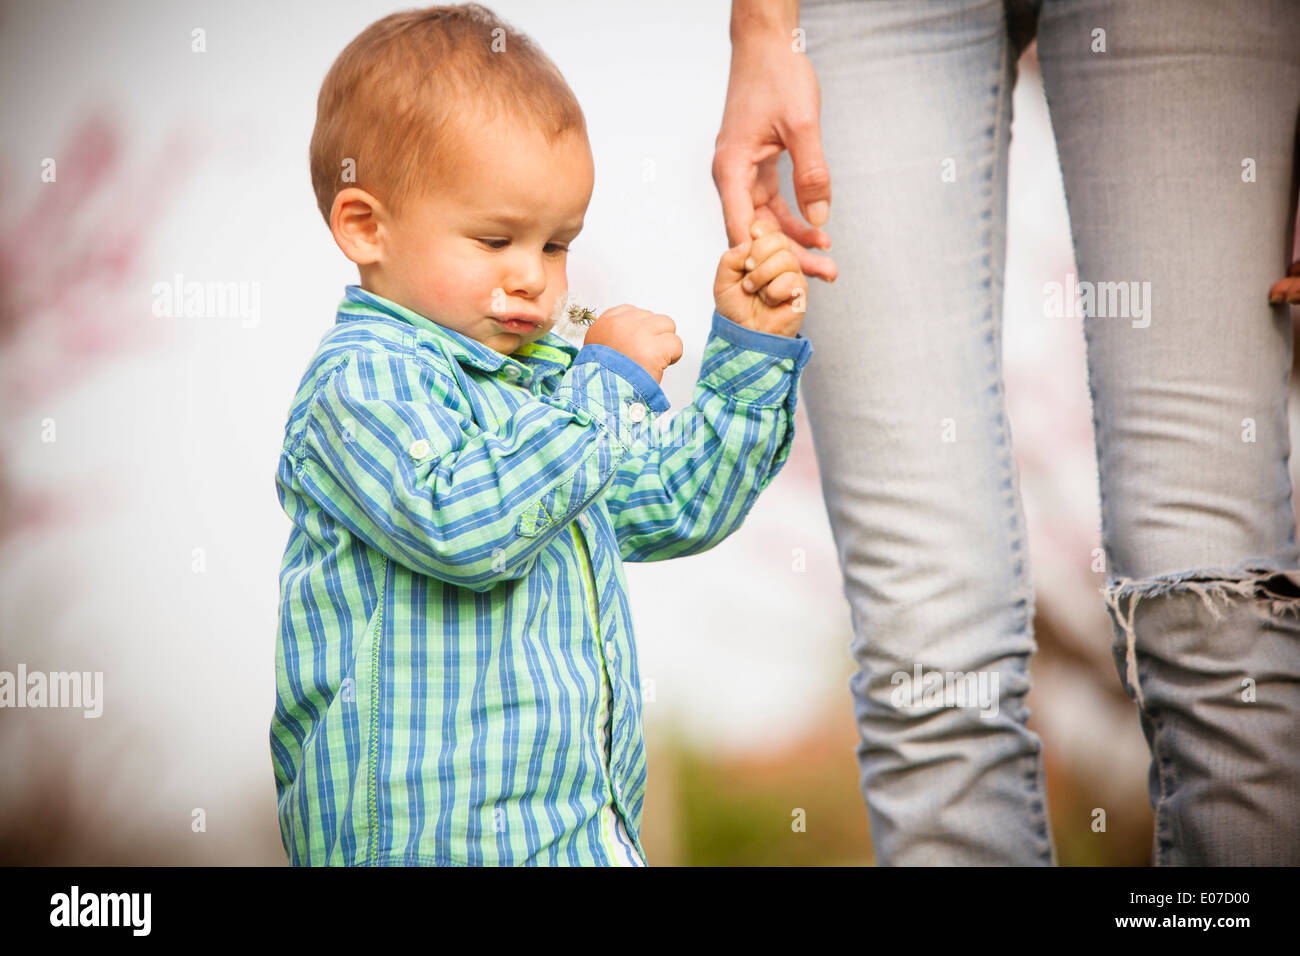 Mother and toddler boy holding hands, Austria - Stock Image